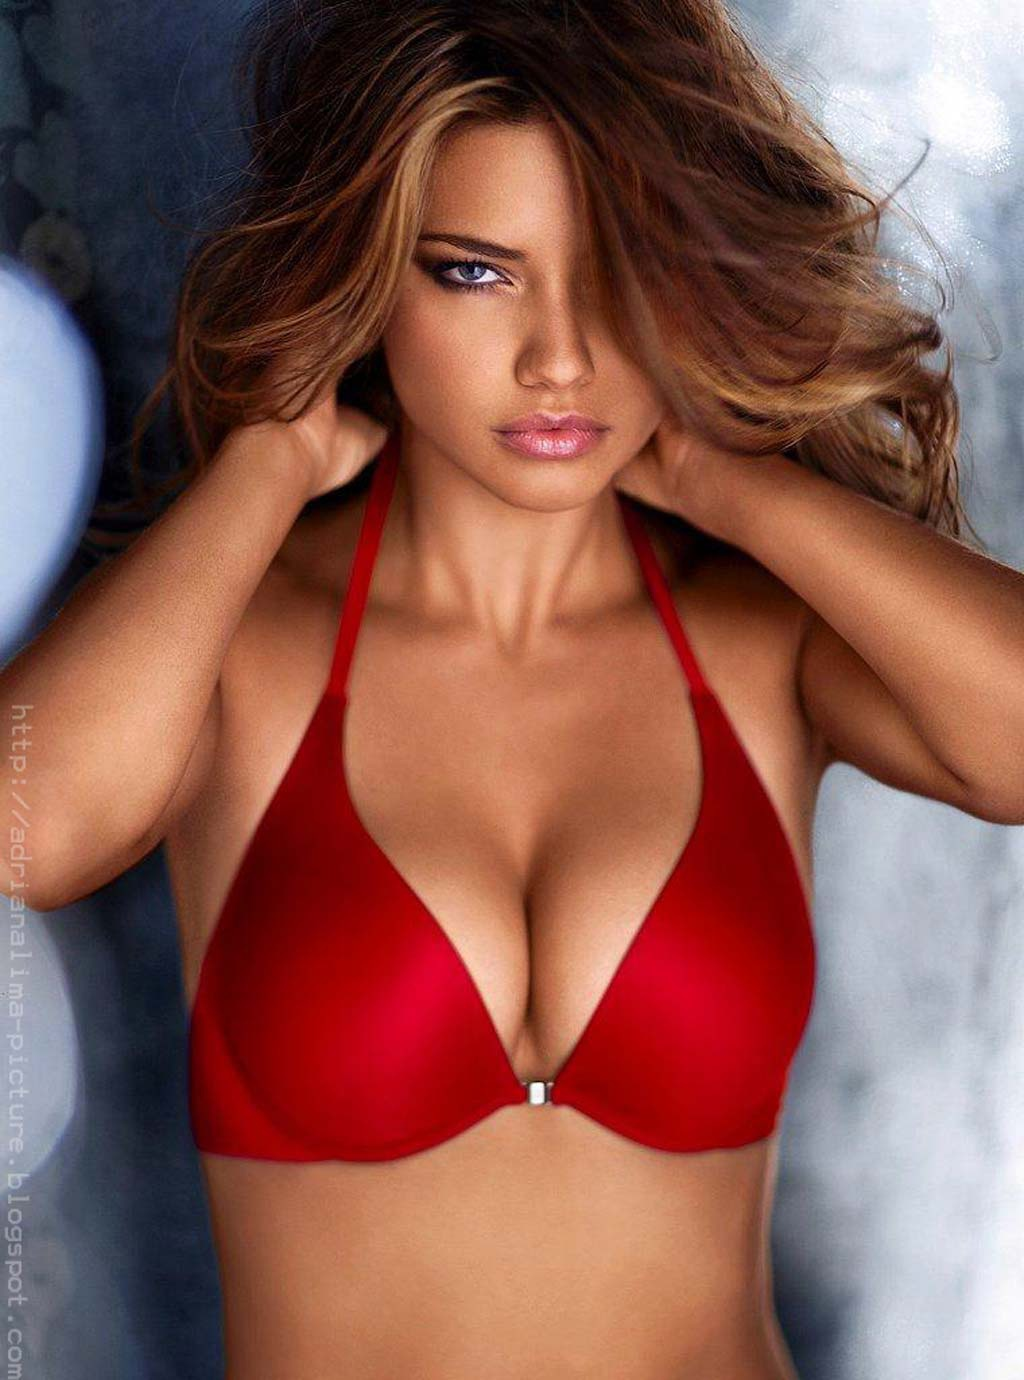 Adriana LIma VS Bikini Wear